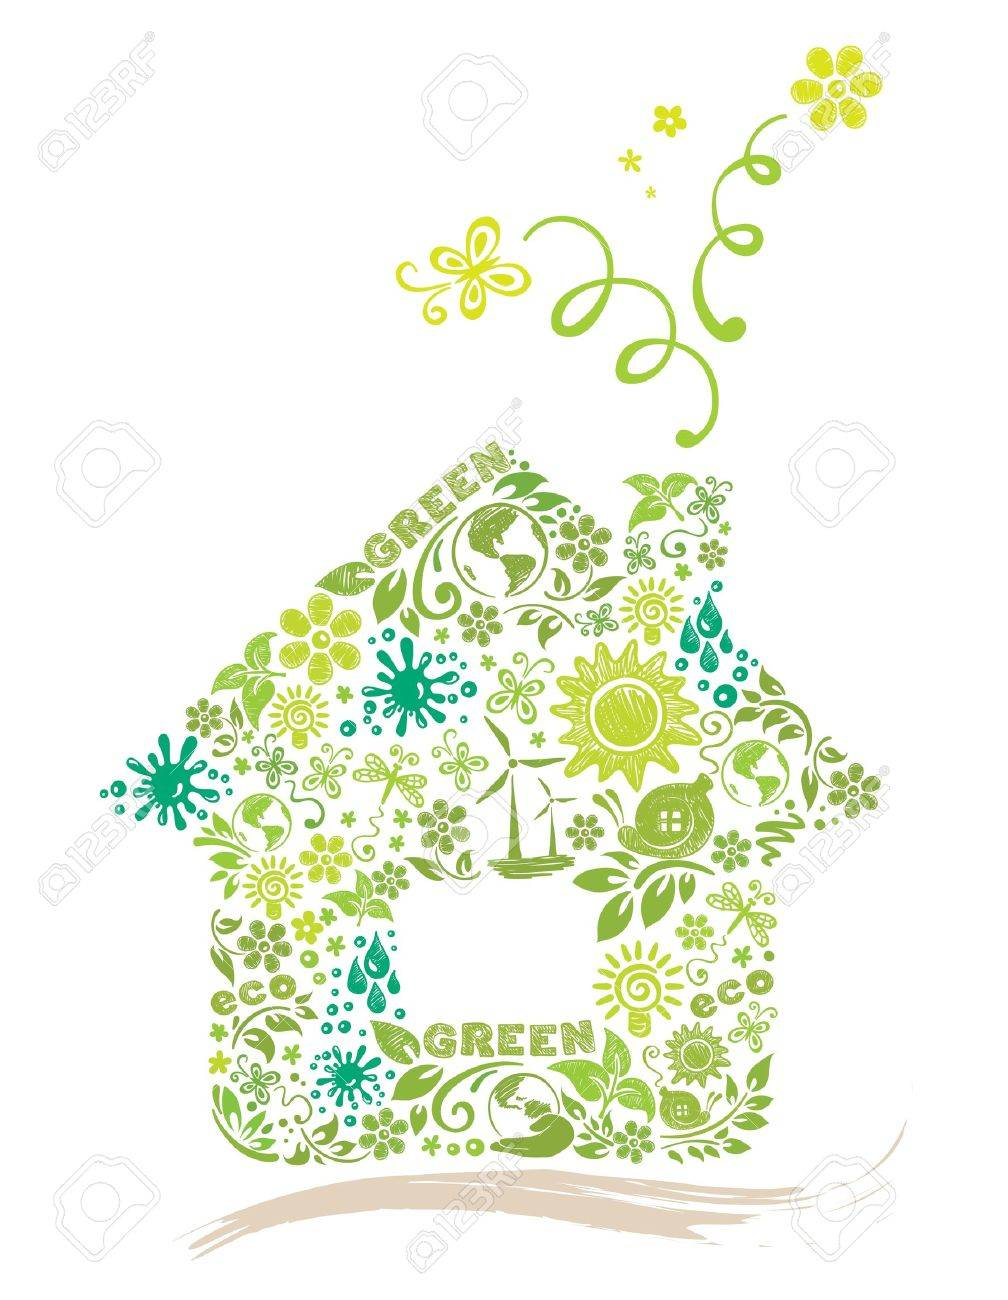 Green House Stock Vector - 10521167